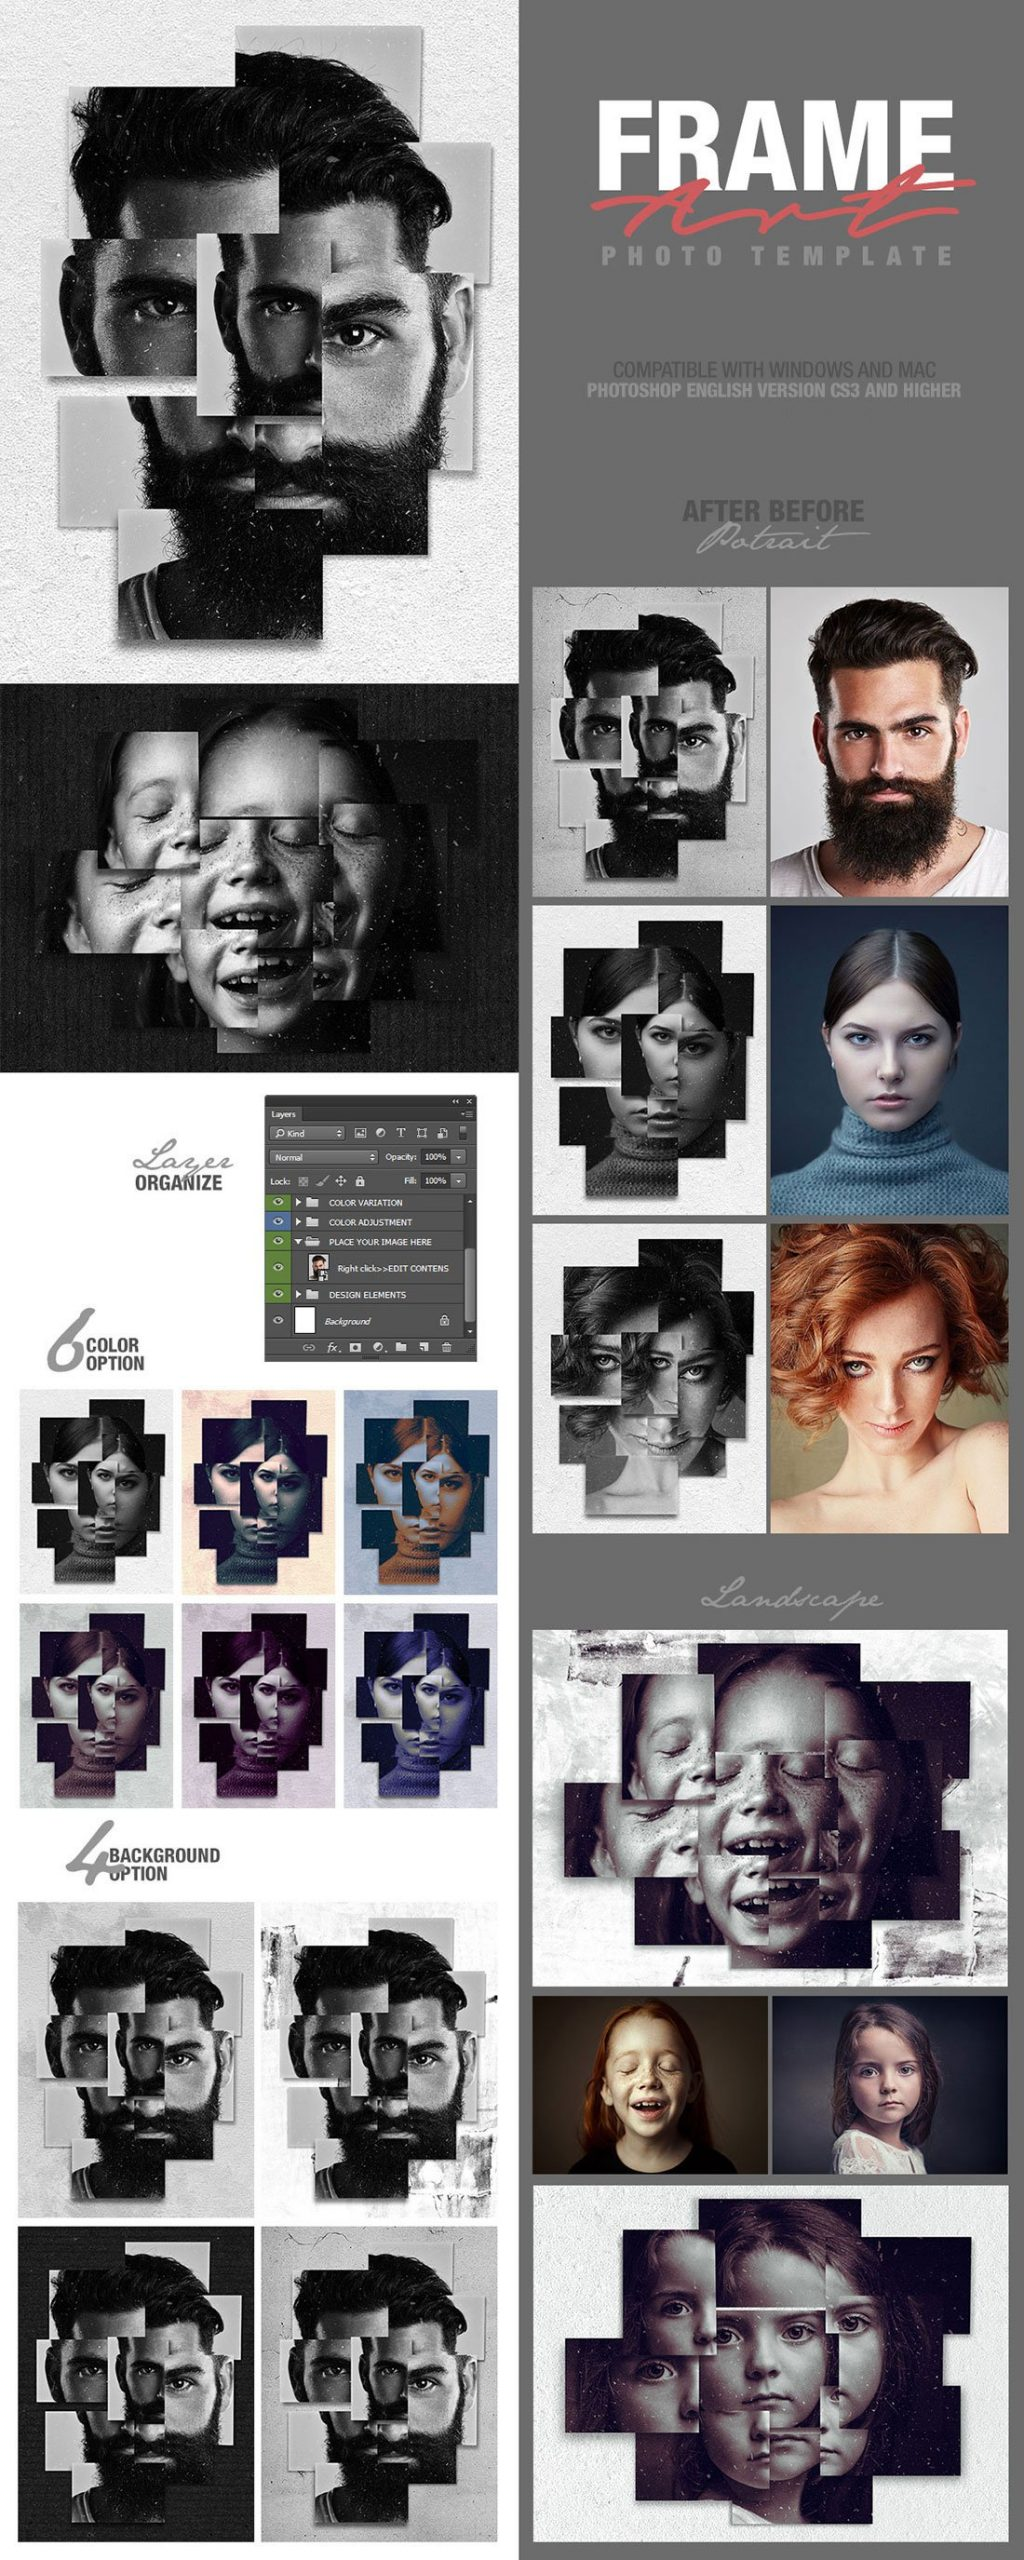 Photoshop Actions & Templates: Artistic Photo FX Bundle - frame art photo template design by amorjesu